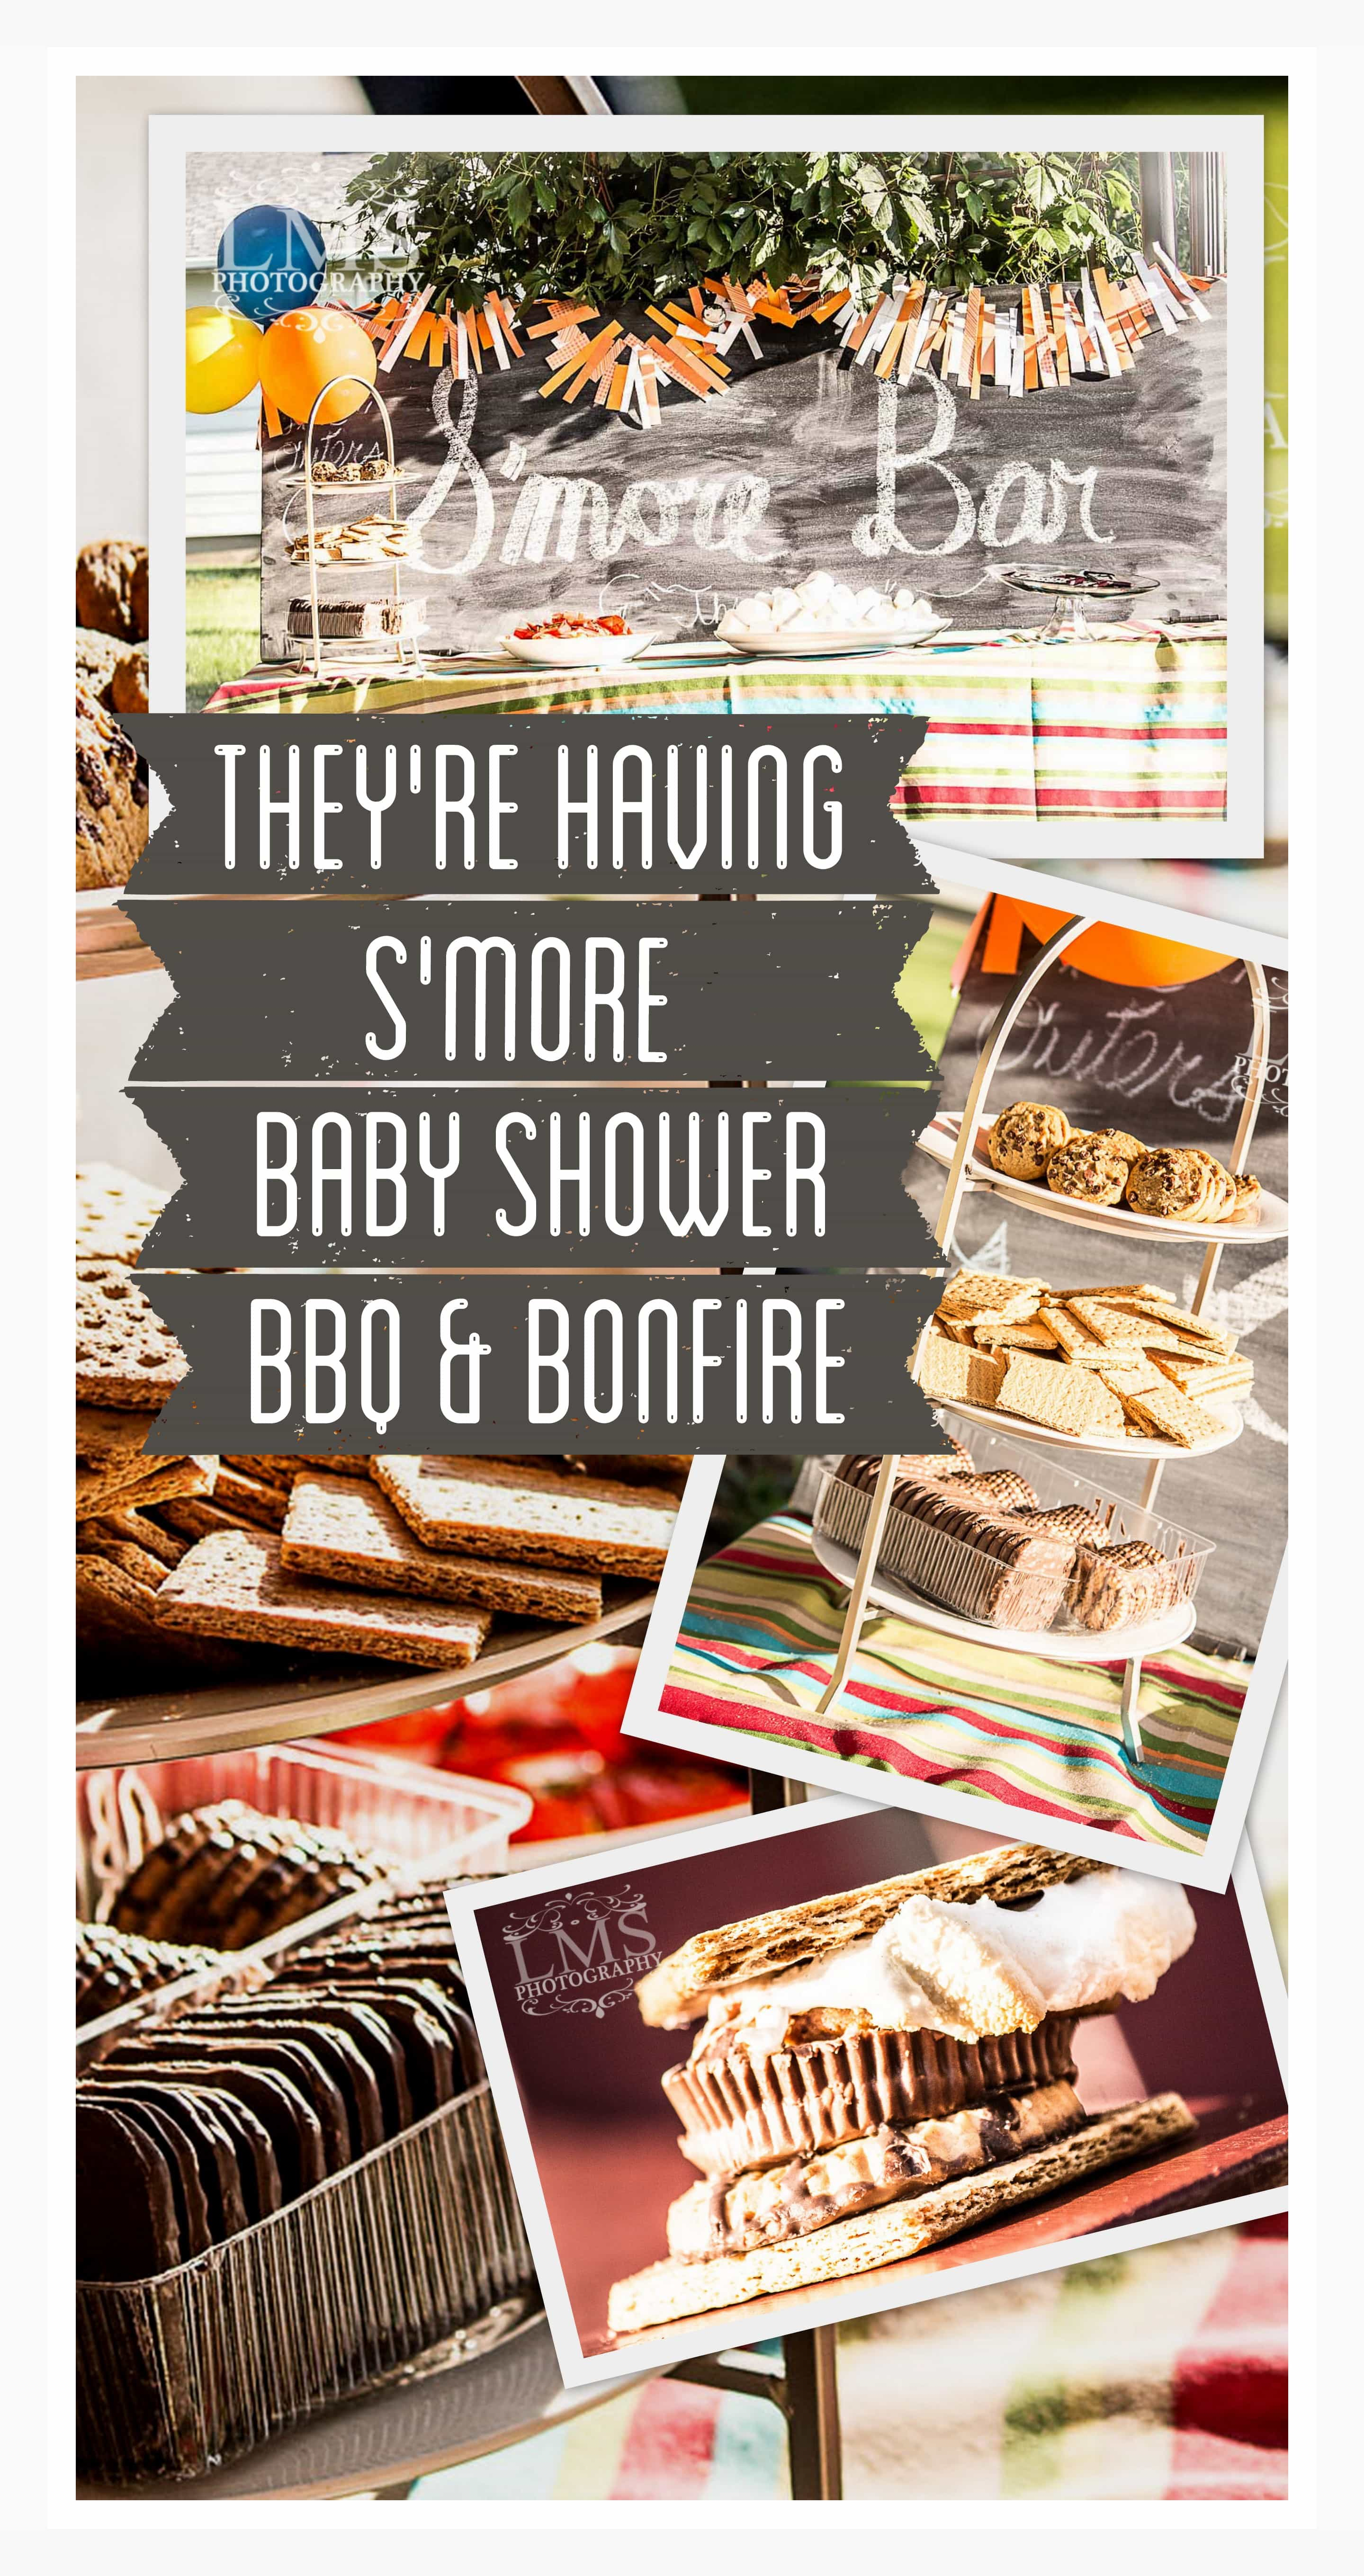 S'More Baby Shower